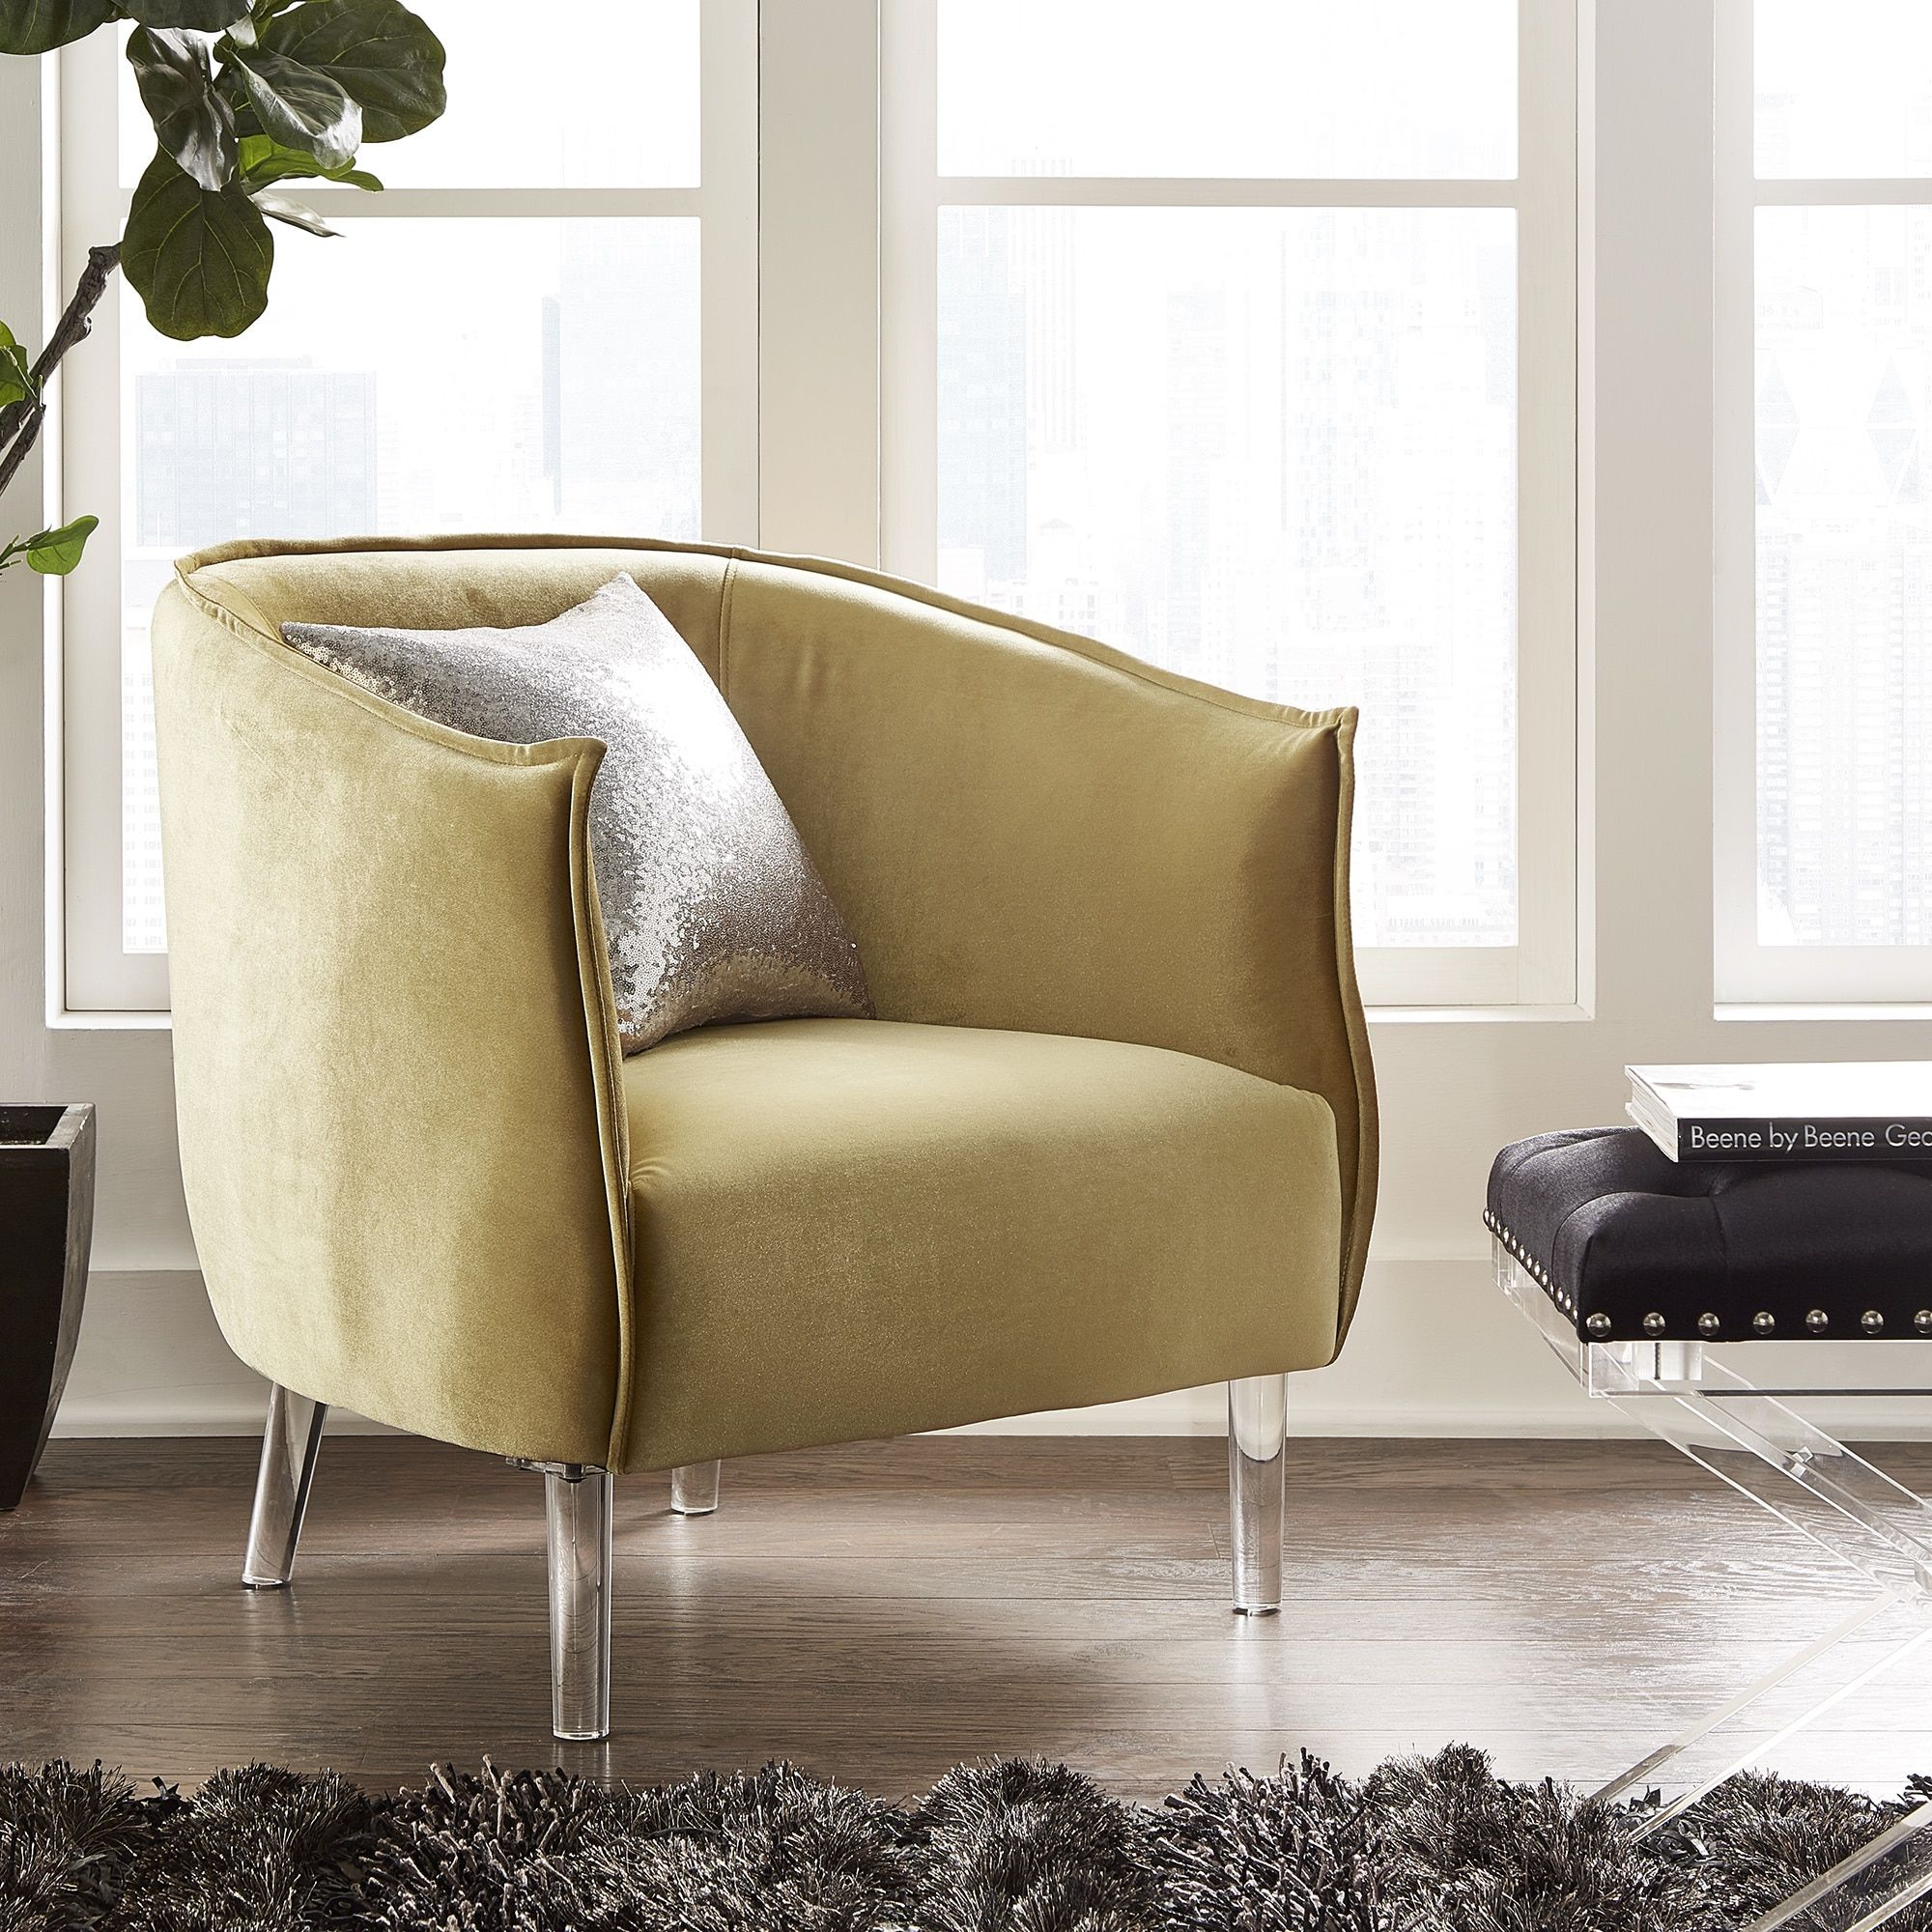 Curved Couch Designs. Vianne Velvet Curved Back Acrylic Leg Accent Chair by  iNSPIRE Q Bold (Golden Velvet)